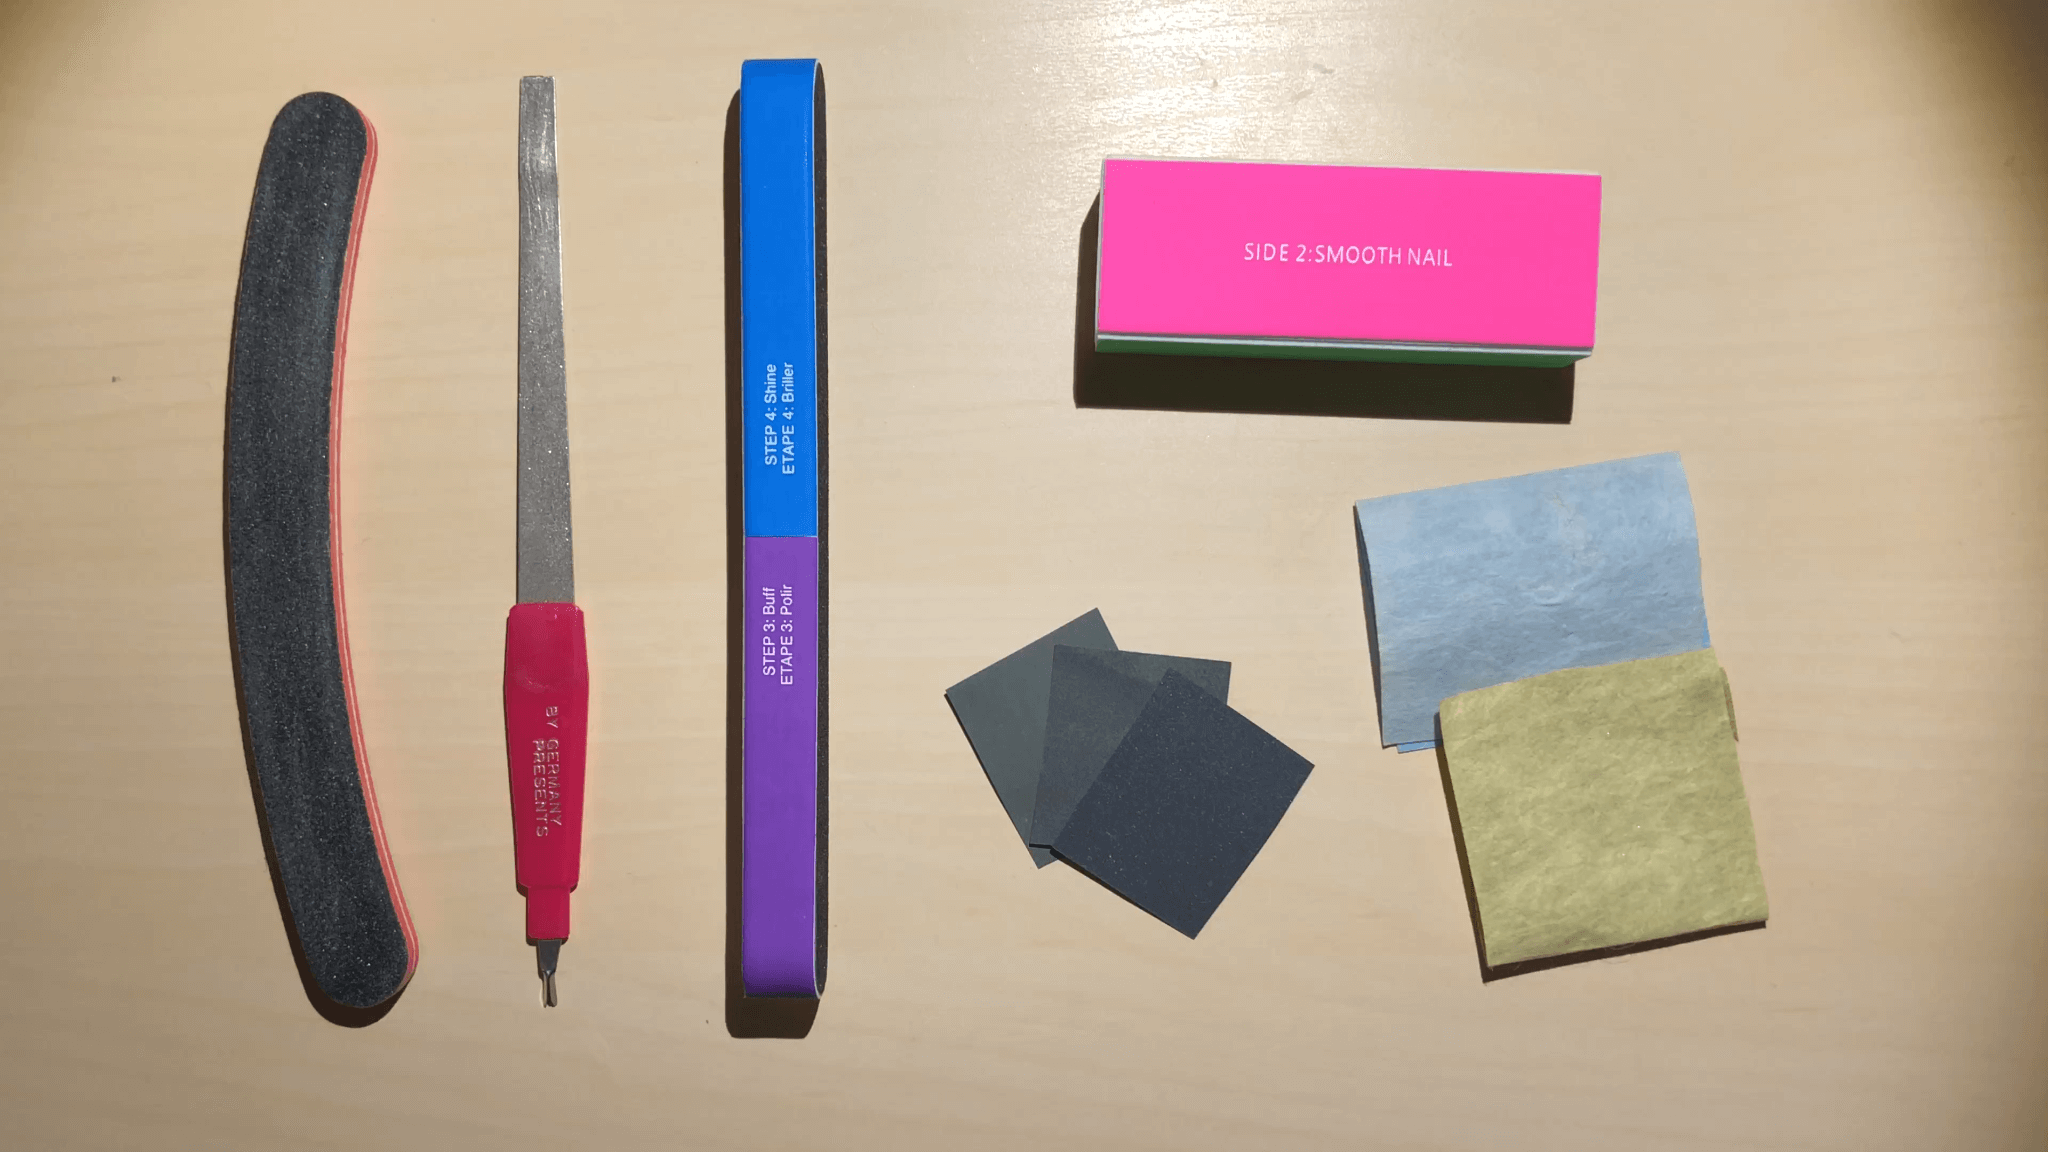 A few tools you can use for shaping your nails including a metal file, multi-sided buffer, and polishing papers.